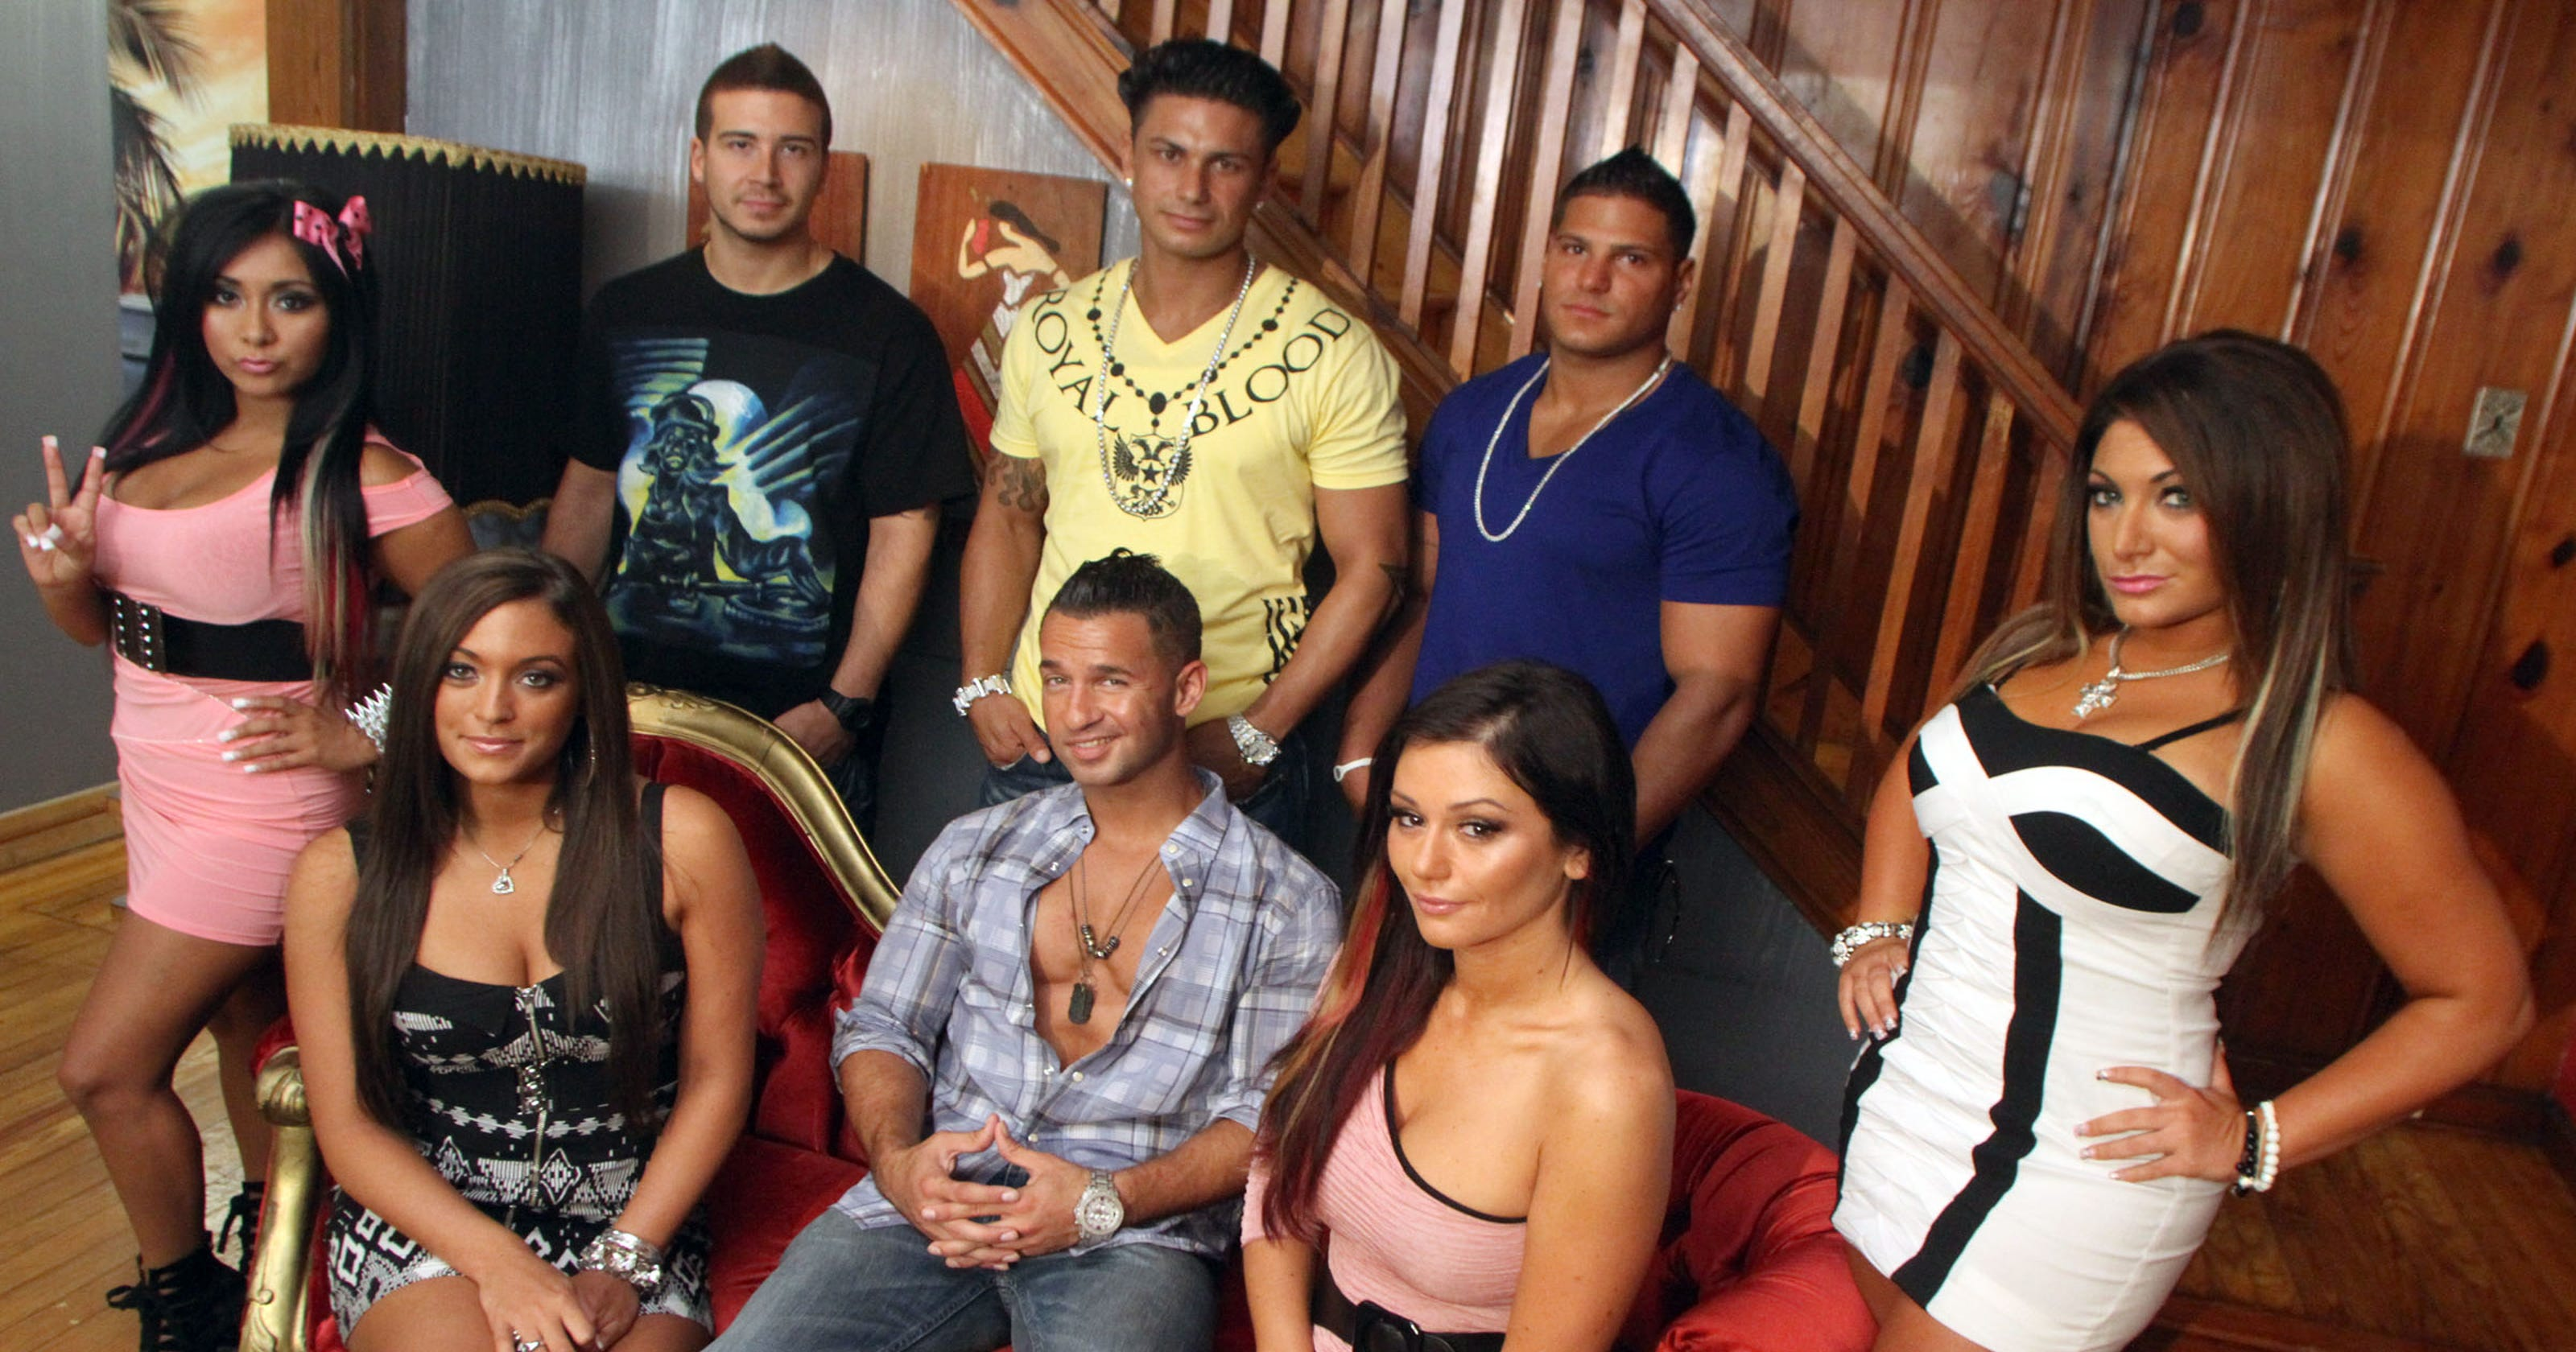 jersey shore family vacation episode 7 full episode free